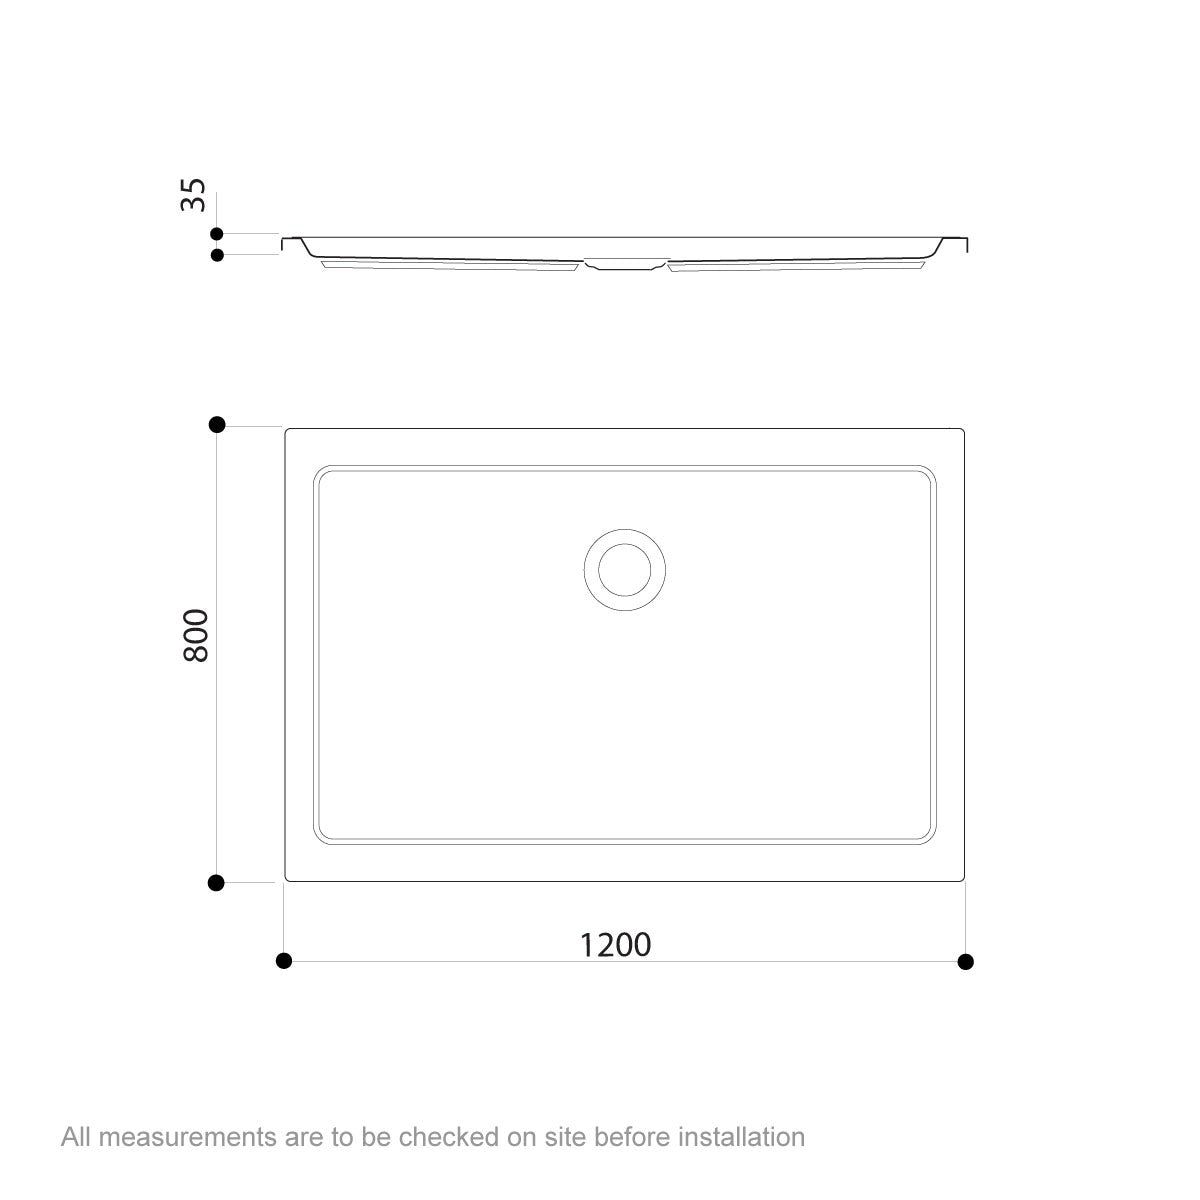 Dimensions for Jacuzzi Essentials matt white acrylic shower tray 1200 x 800